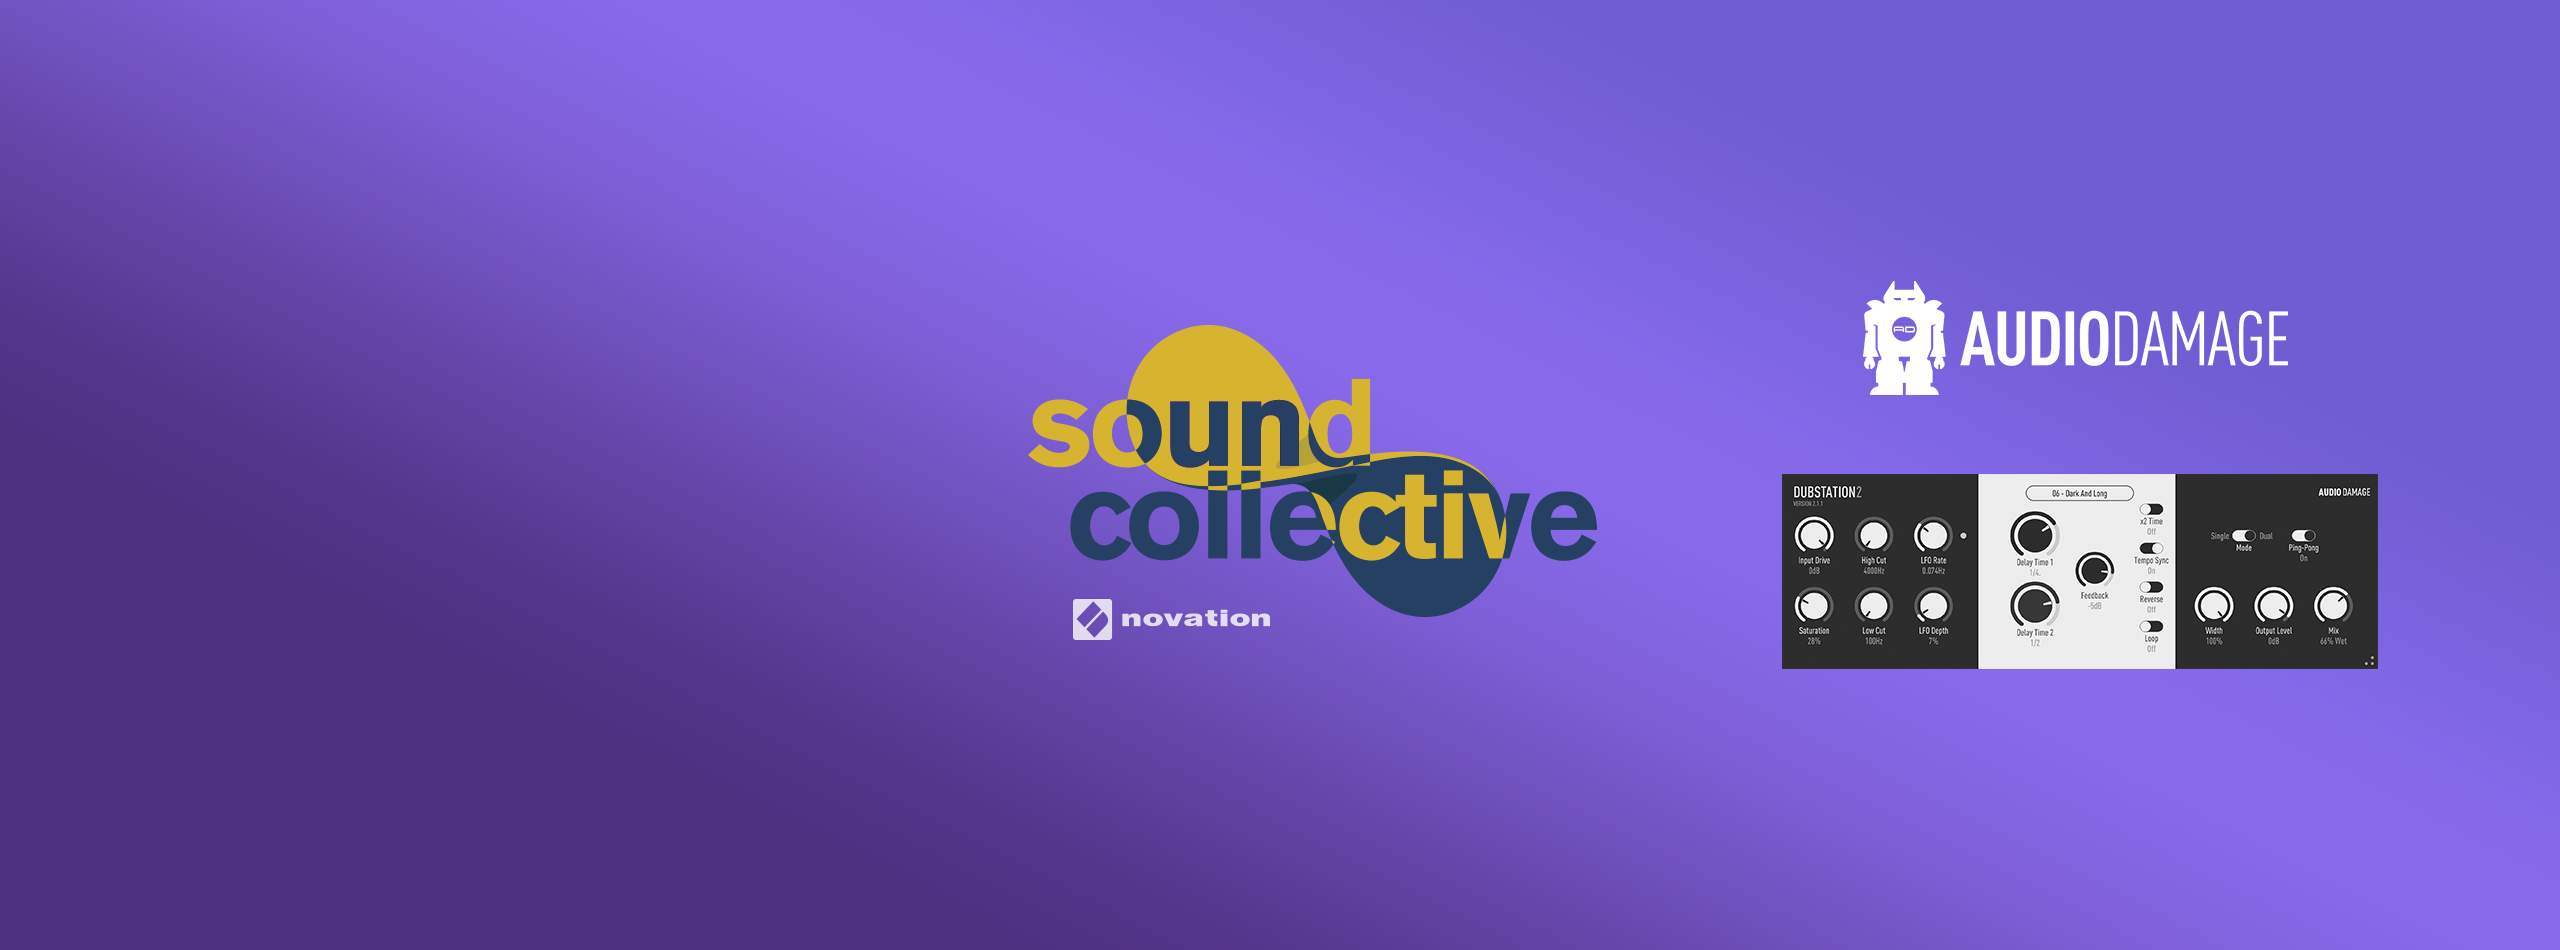 Sound Collective Dubstation